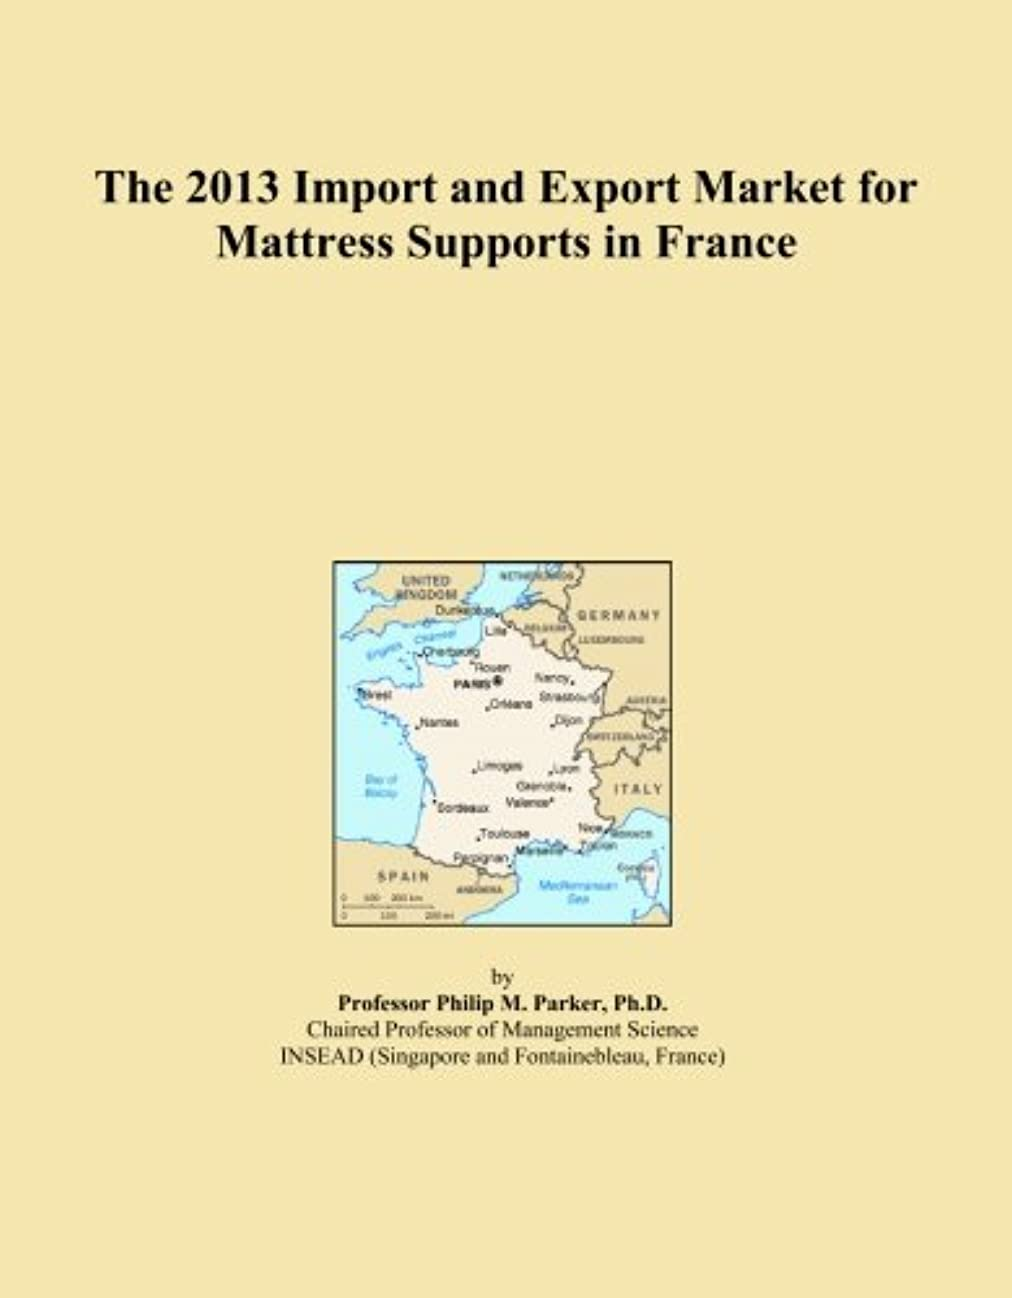 深さキリストきらめきThe 2013 Import and Export Market for Mattress Supports in France